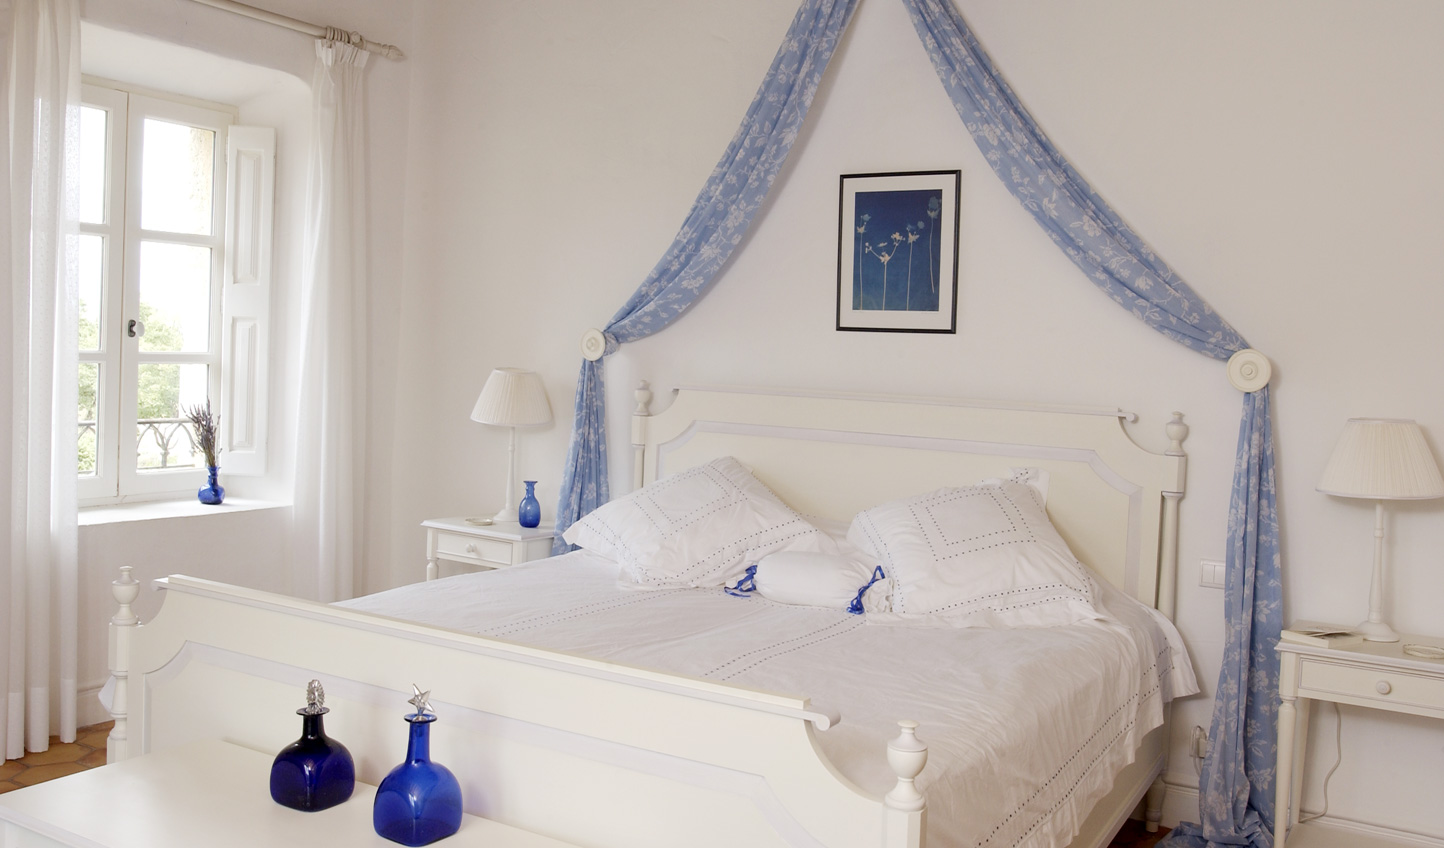 Each of the bedrooms take their inspiration from the surrounding countryside